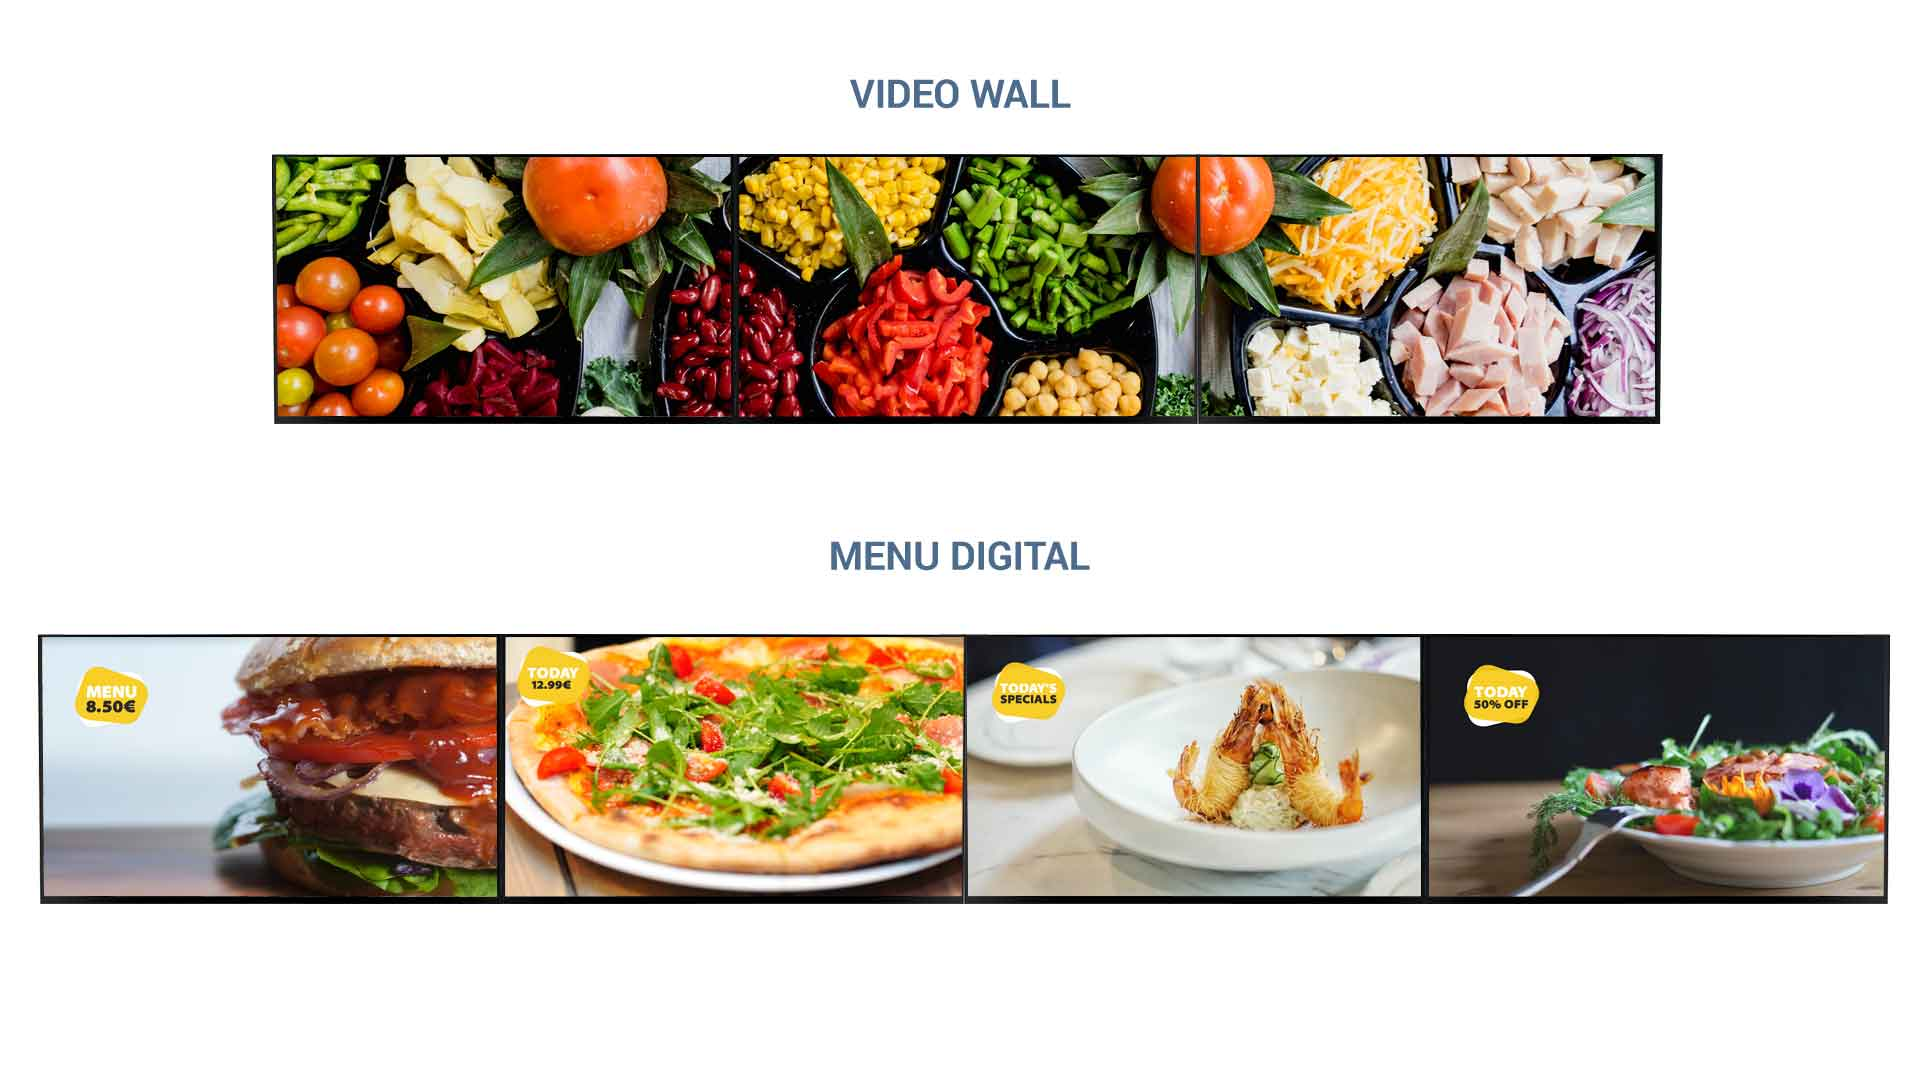 Menu Boards Digitais - Displays e Video Wall QMAGINE